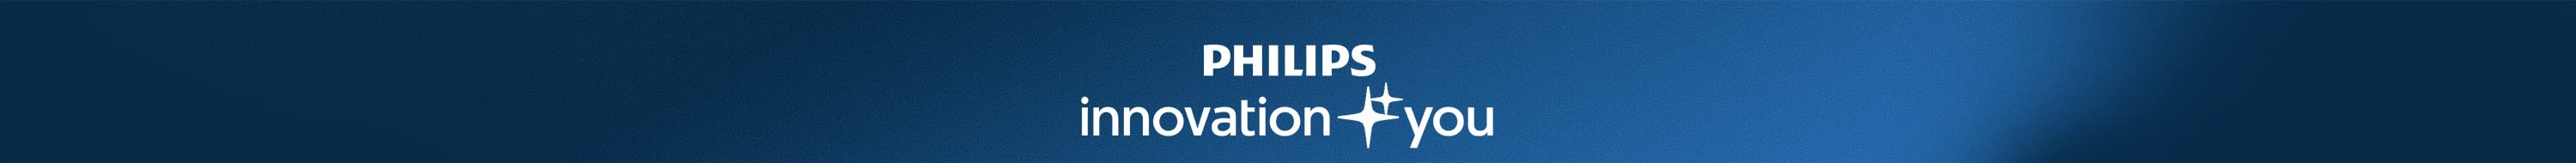 Philips. Innovation and you.